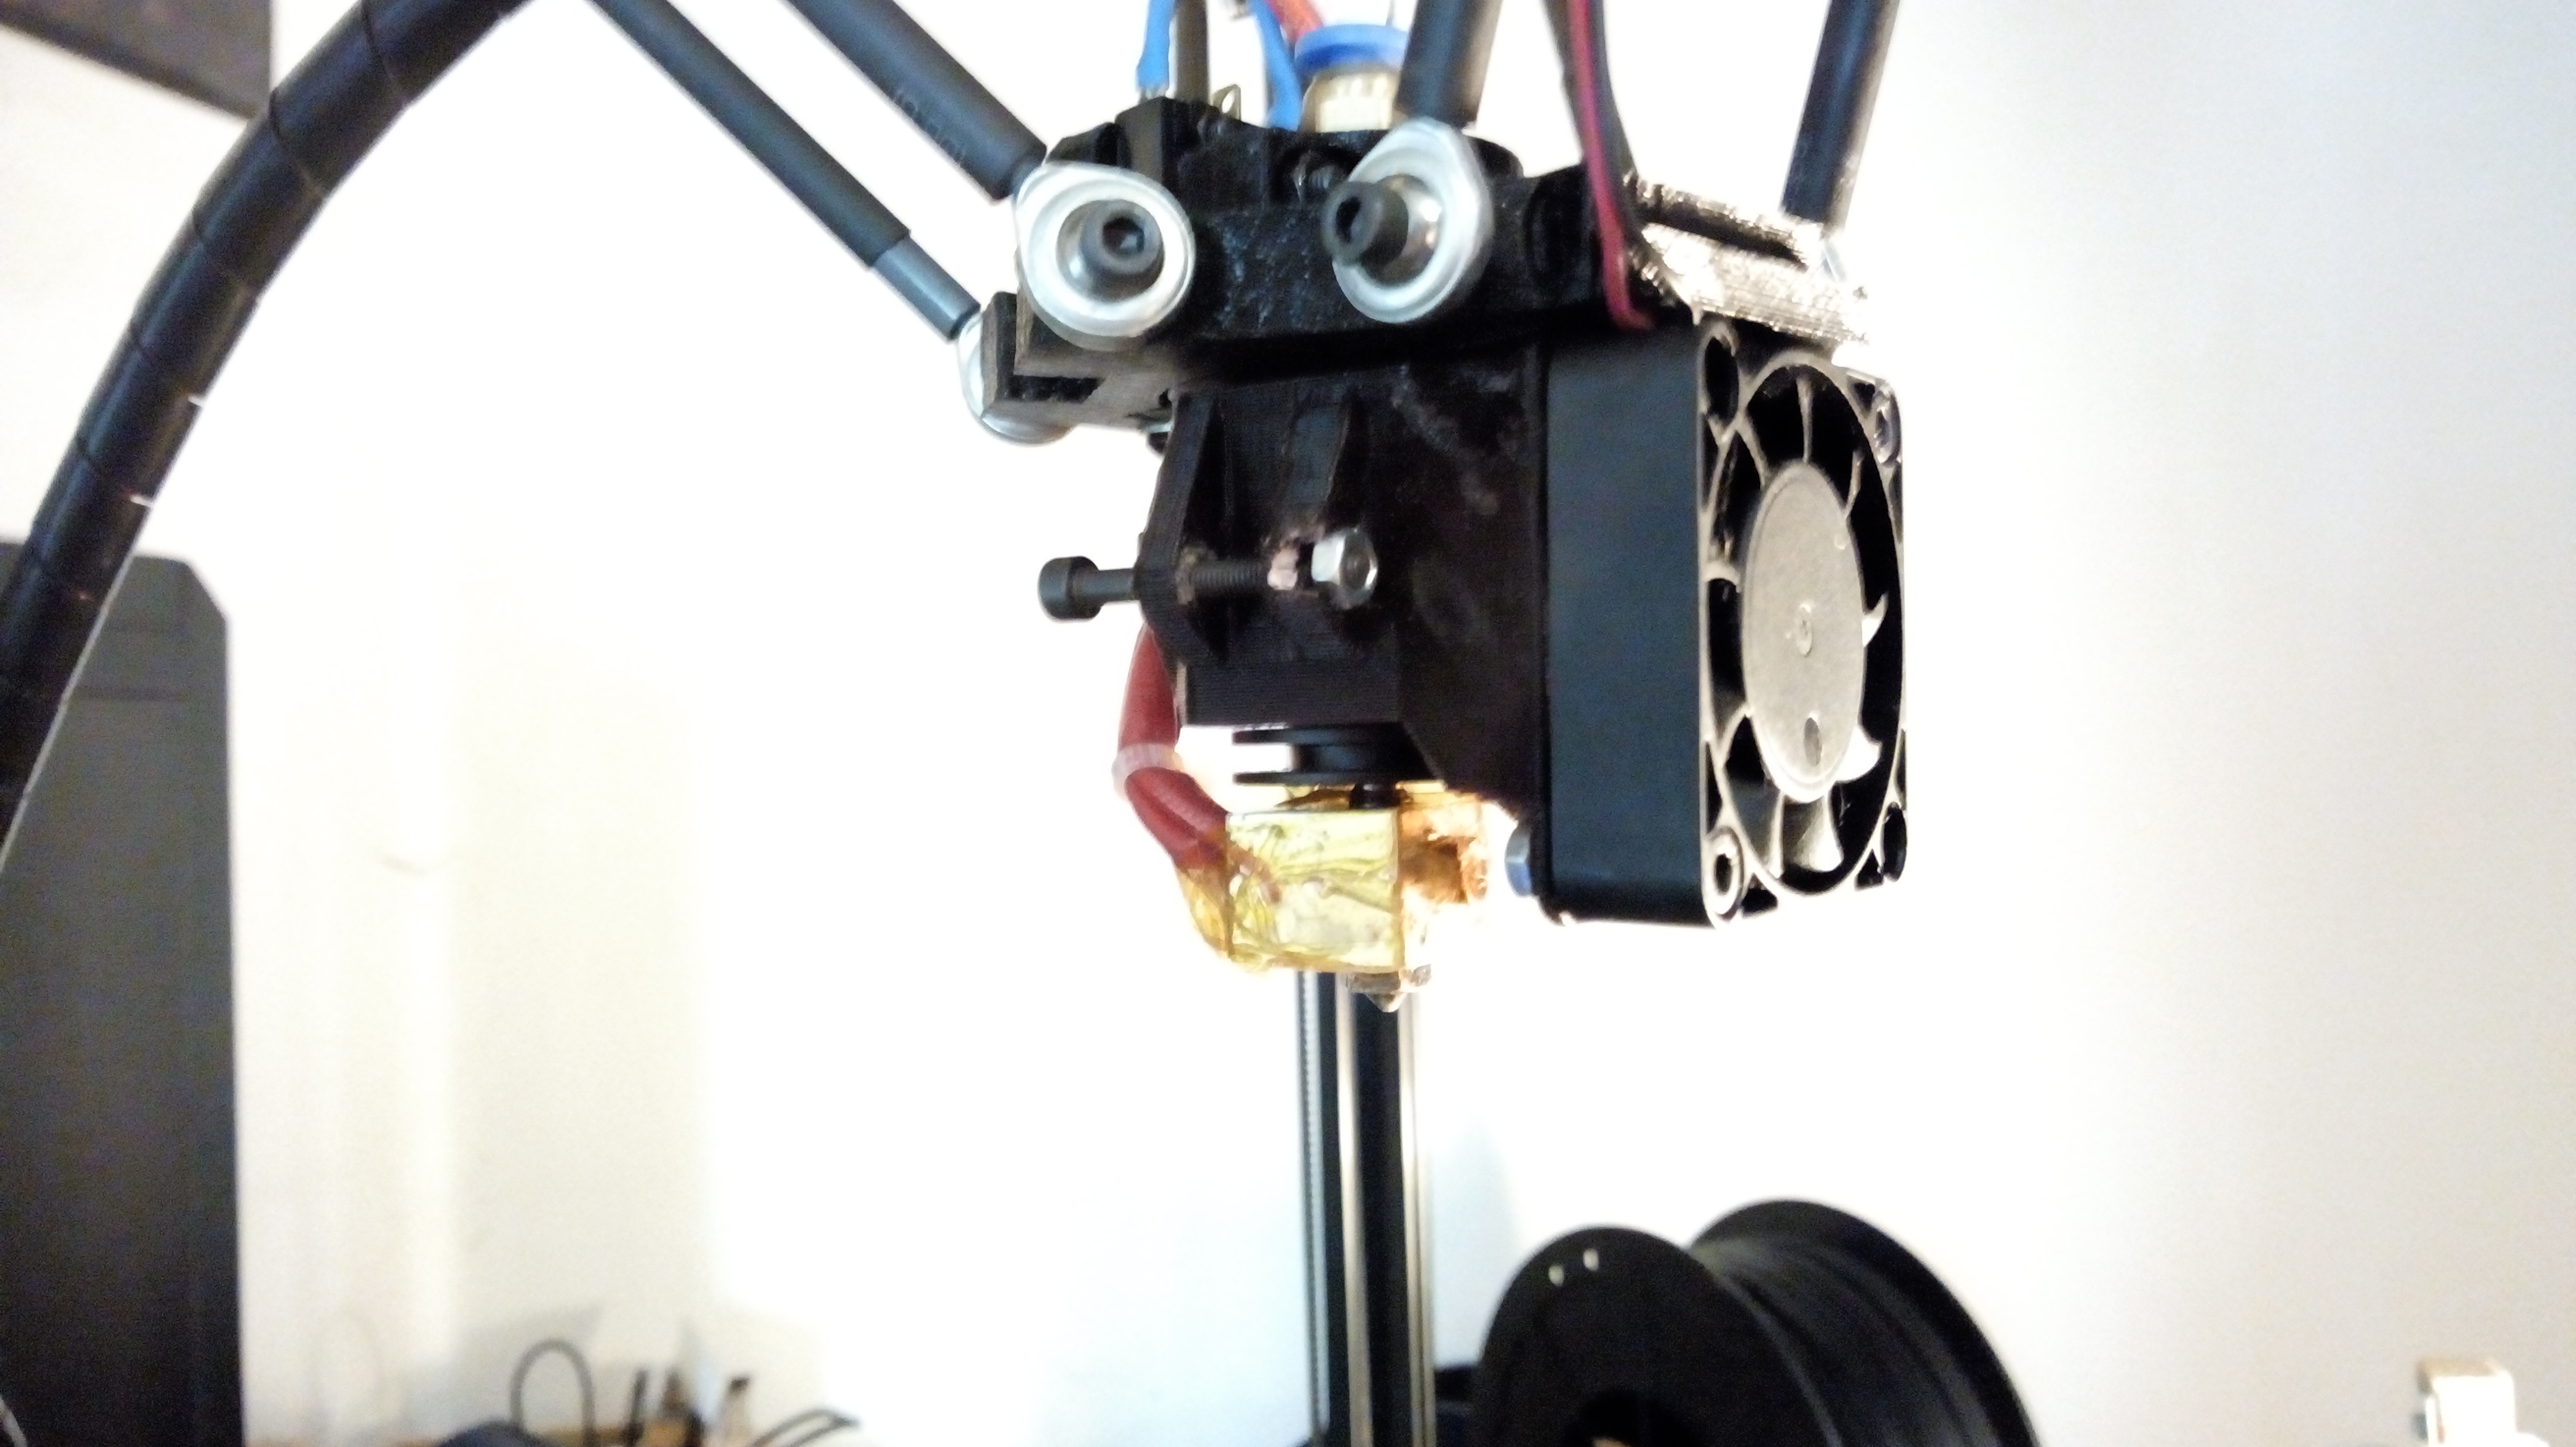 Anycubic delta kossel xl: repairing and onest review – Indie